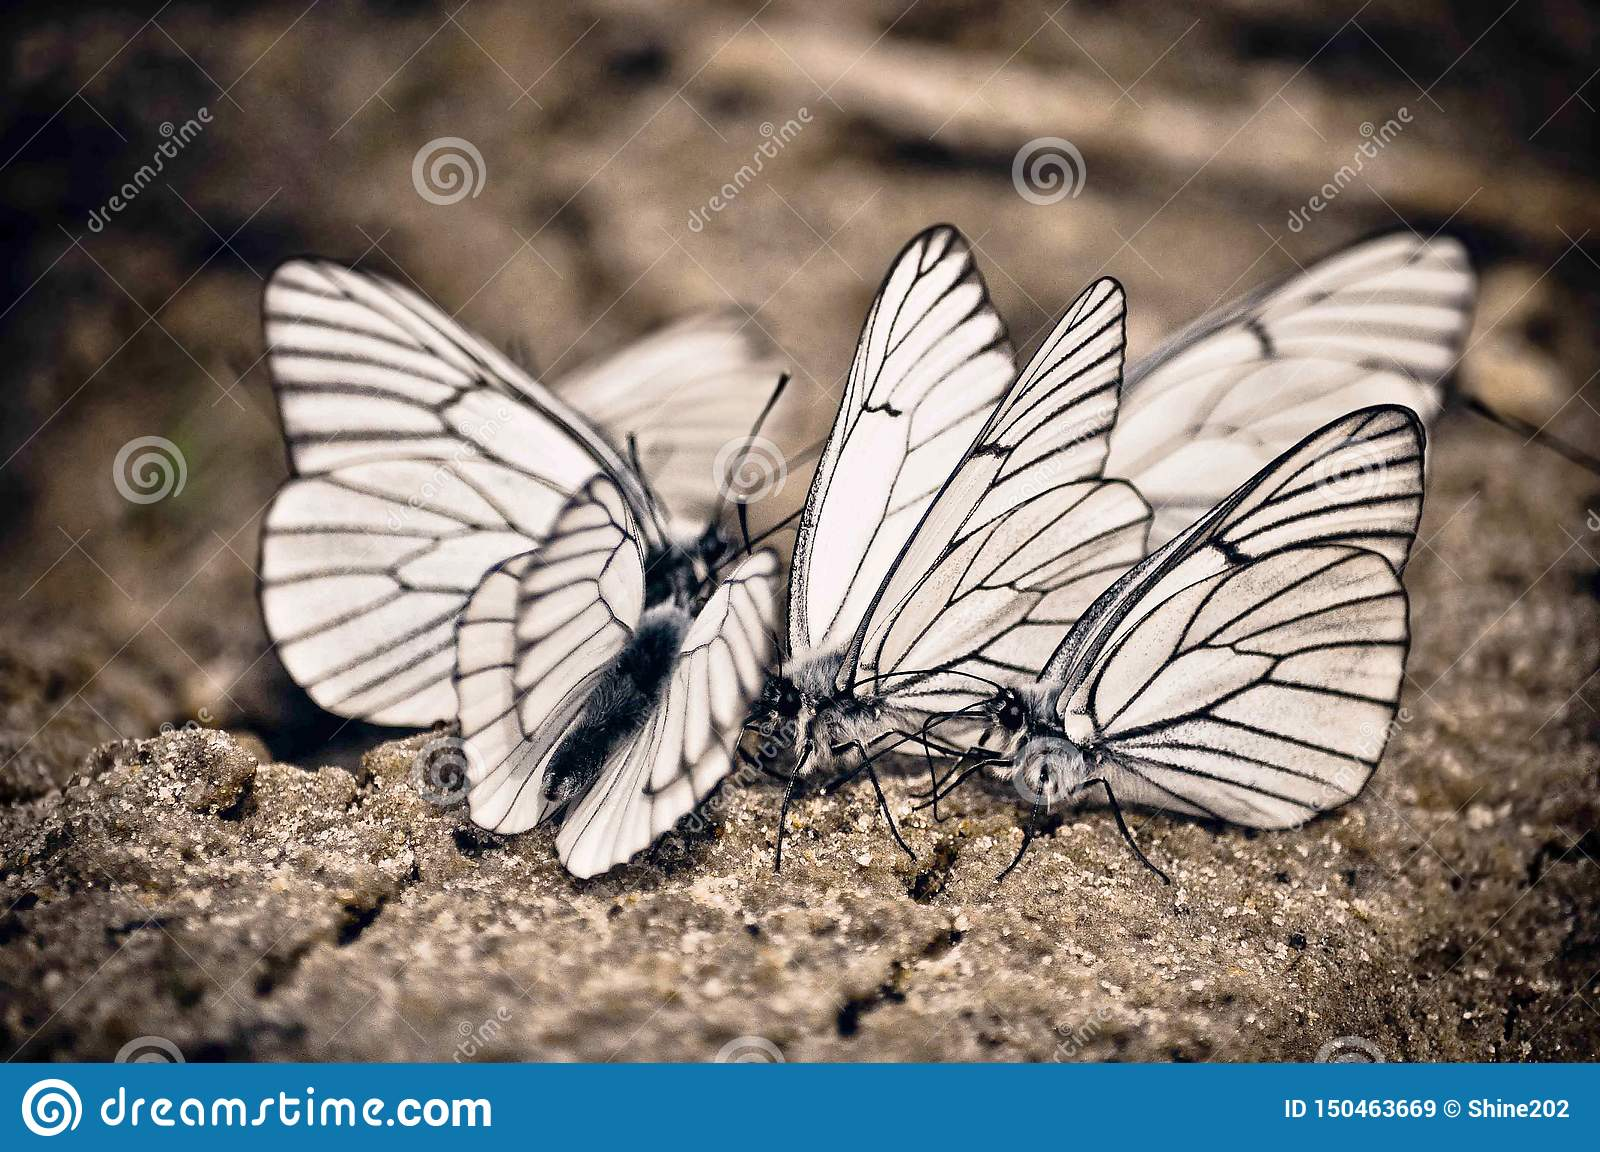 A group of white large butterflies that sit together next to each other